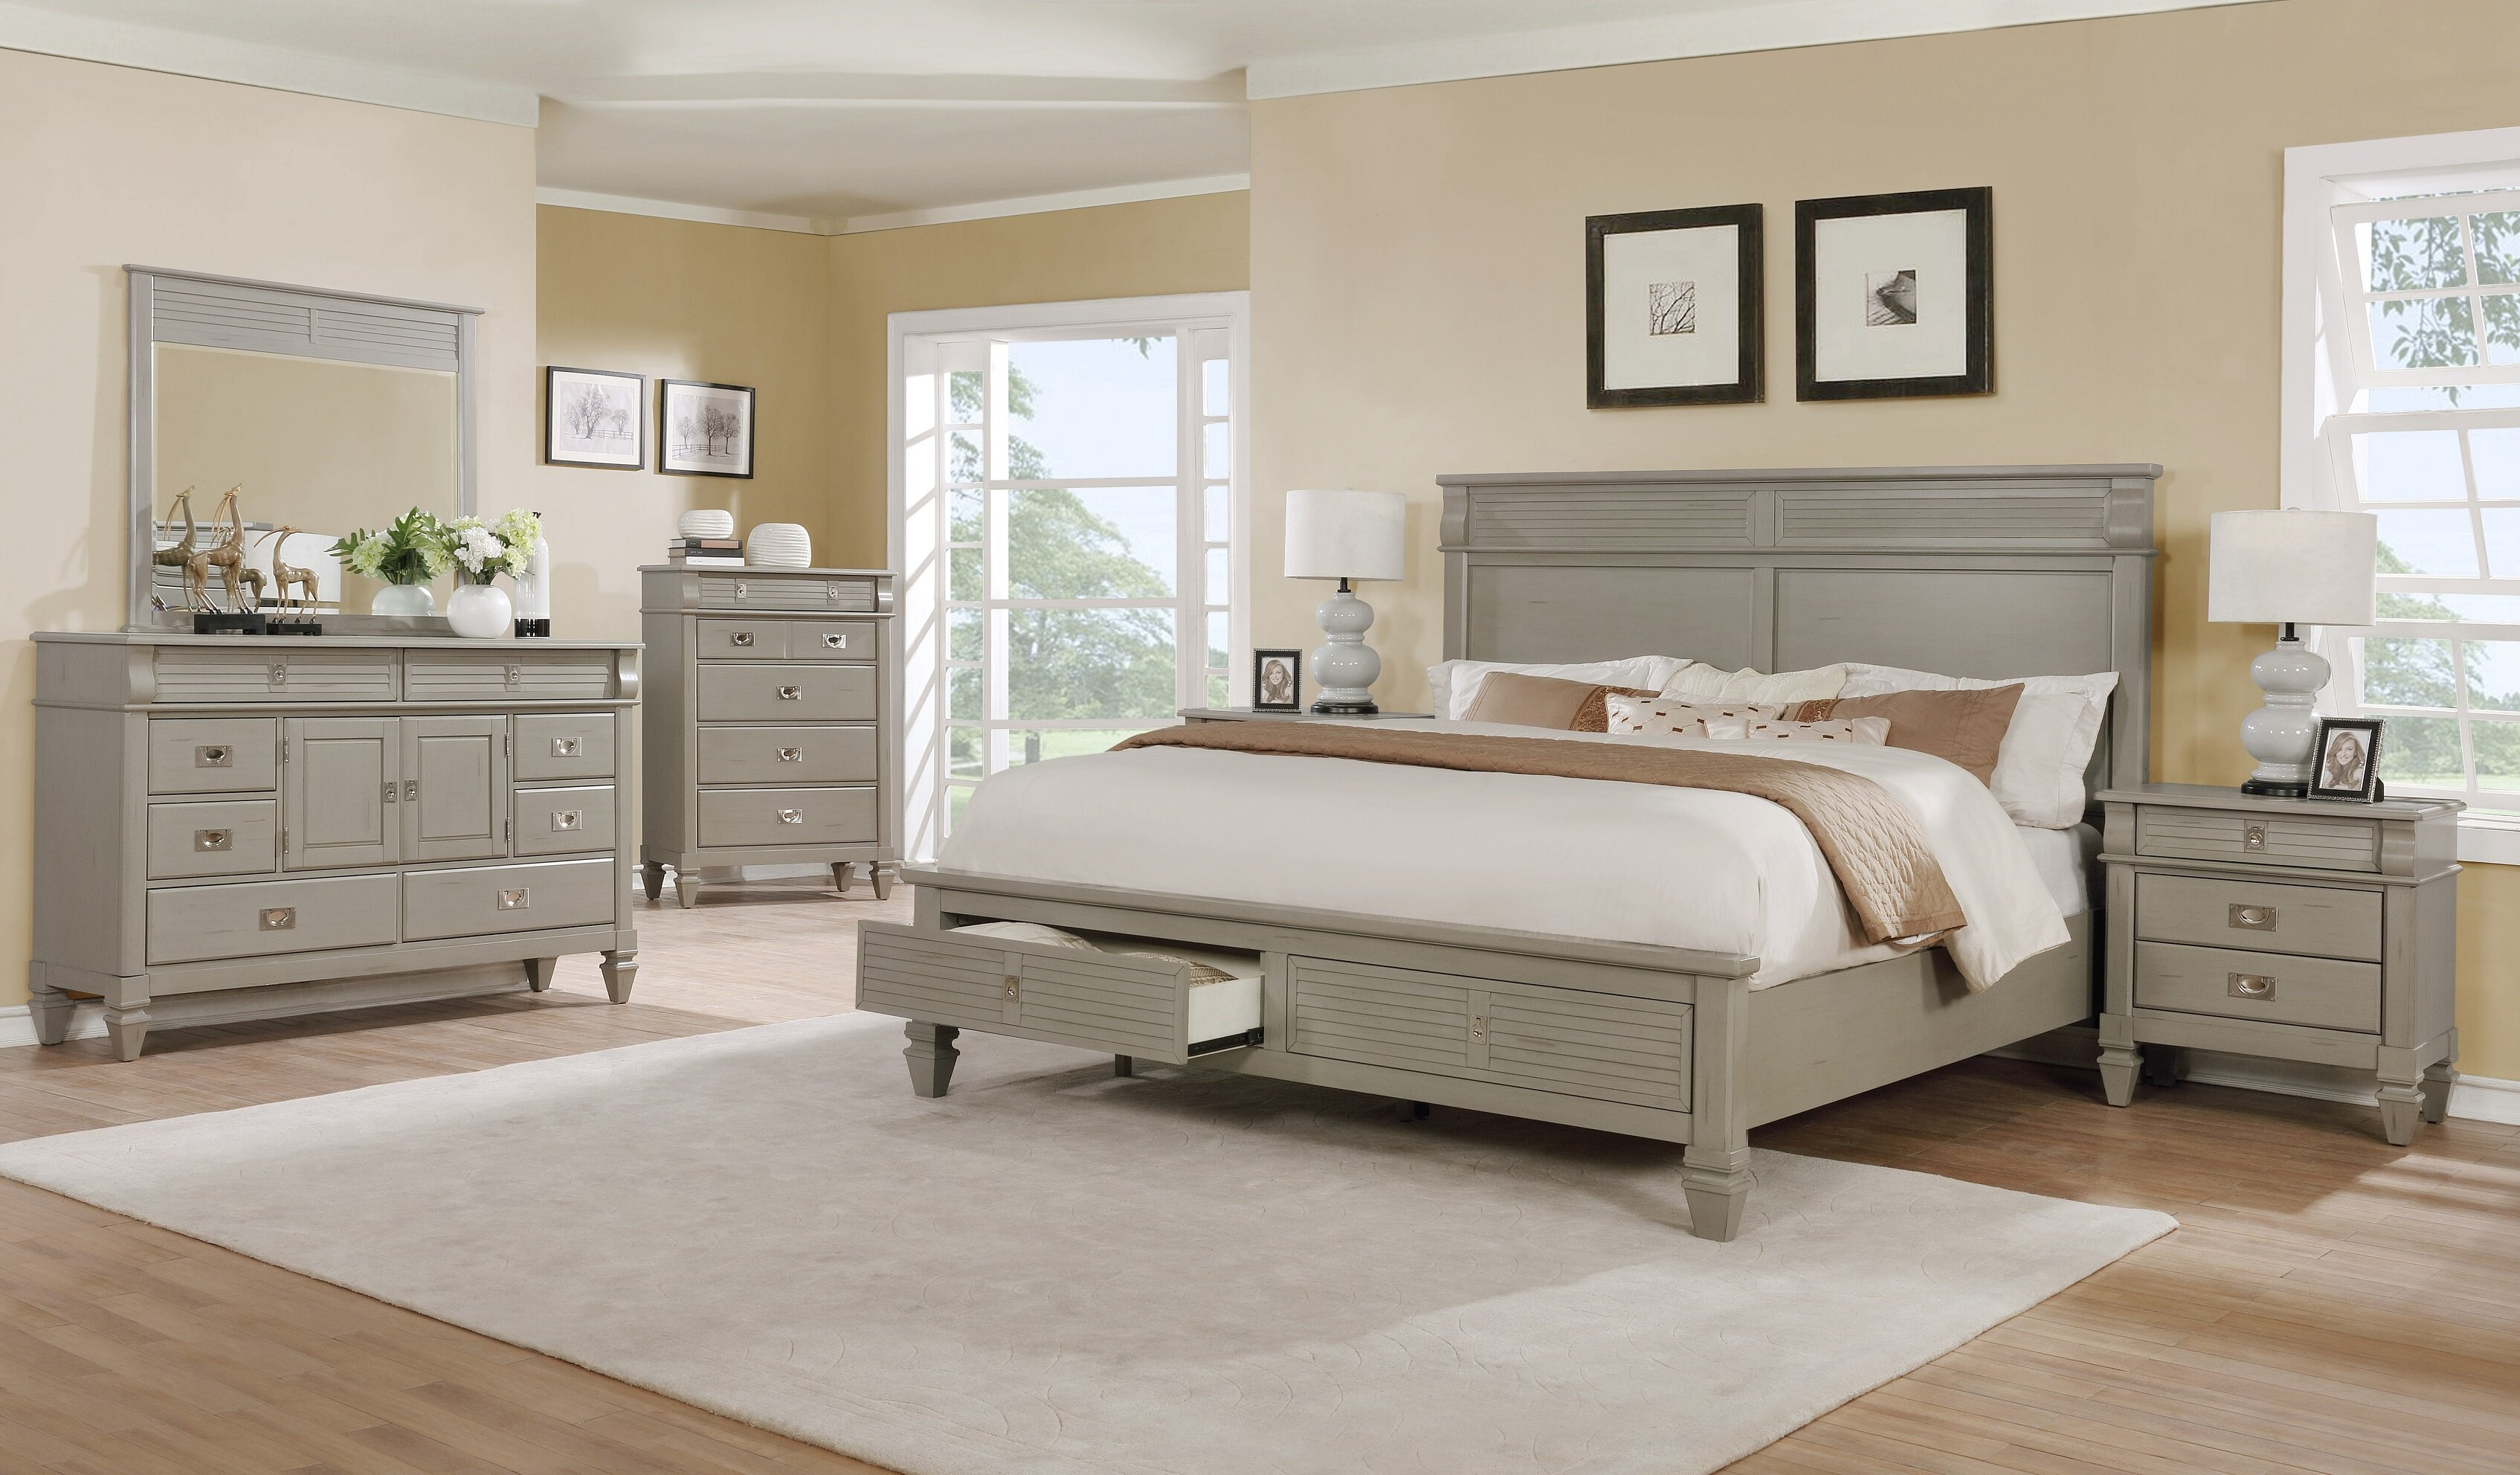 Light Wood King Bedroom Sets Pine Oak Beige Cream Etc About Cream ...